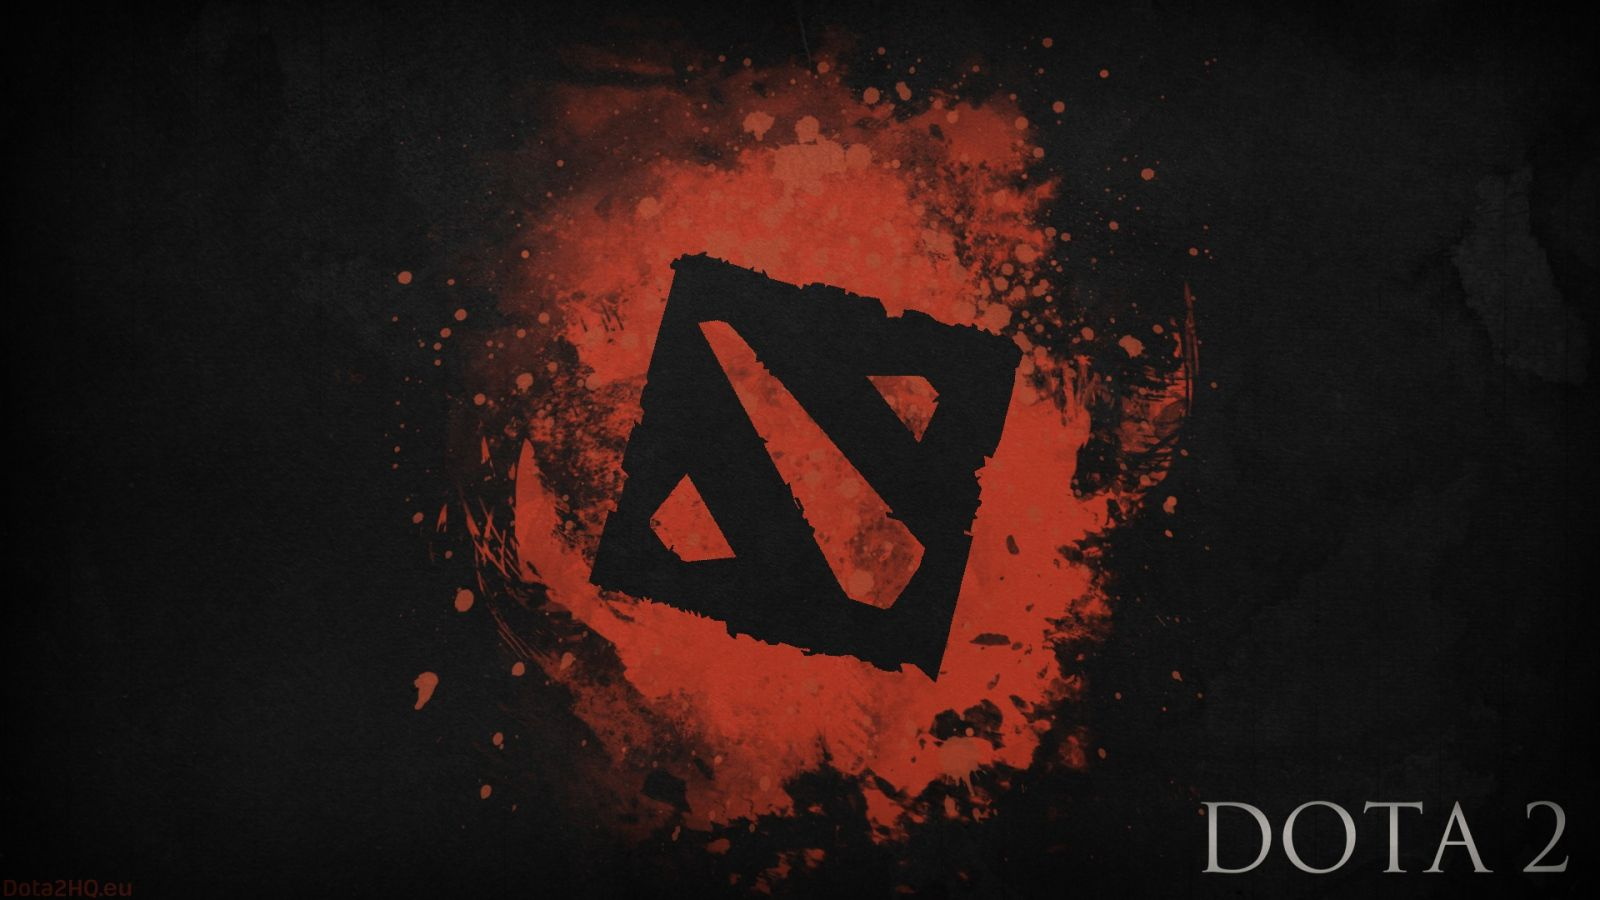 Download Wallpaper 1600x900 Dota 2, Black logo, Art